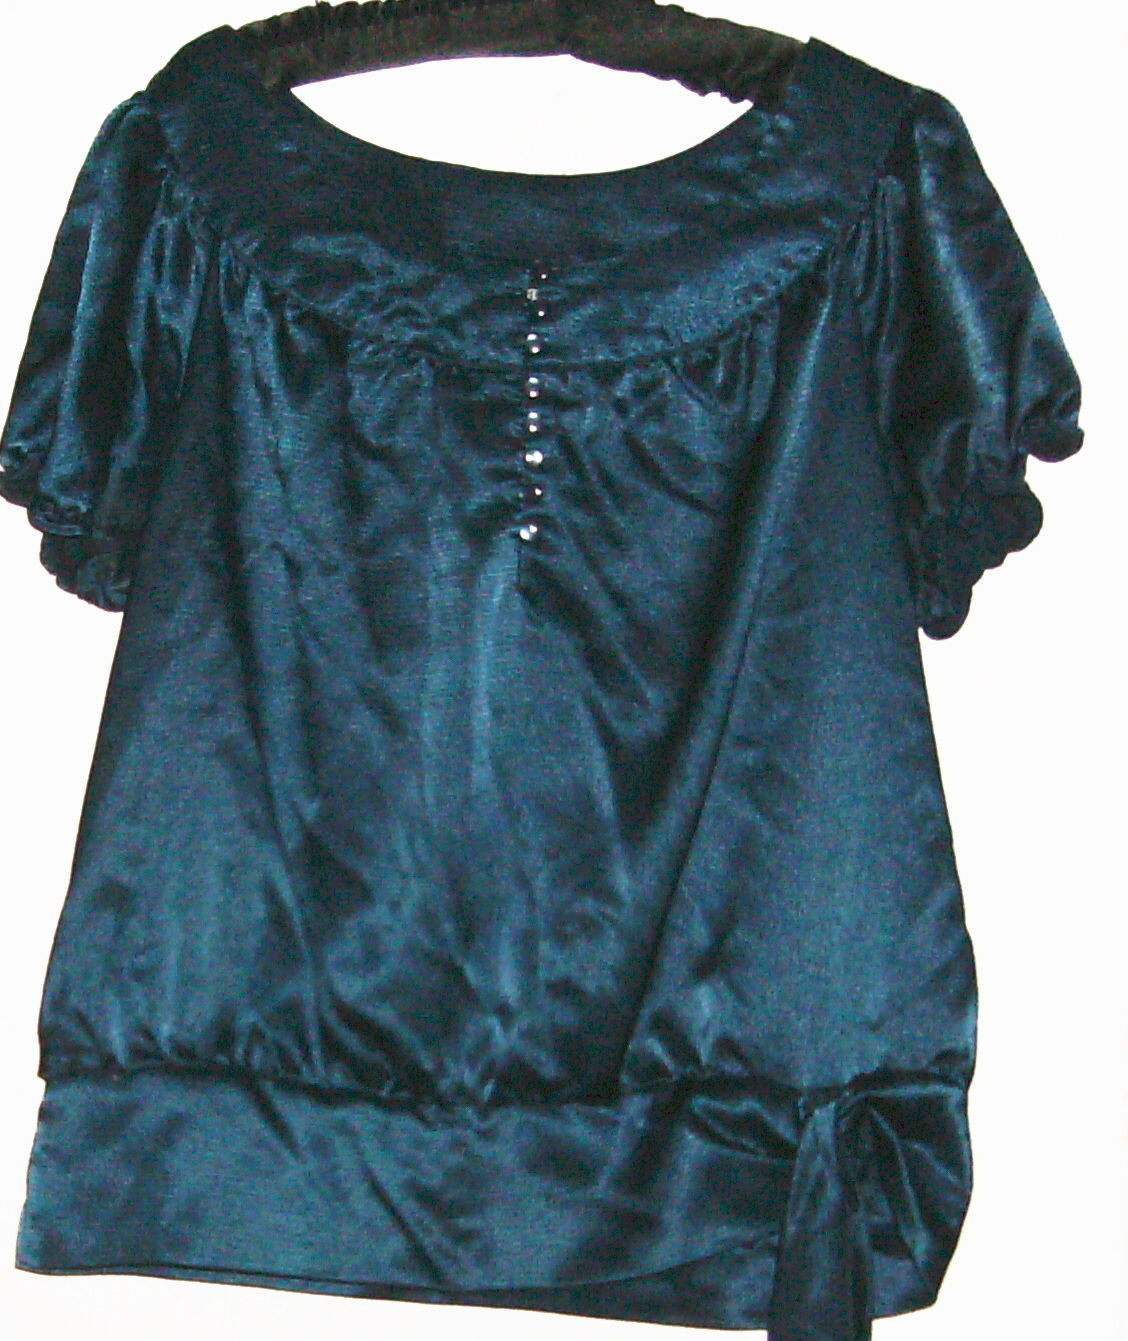 WOMEN'S BLUE JEWEL TONE SCOOP NECK BLOUSE SIZE L